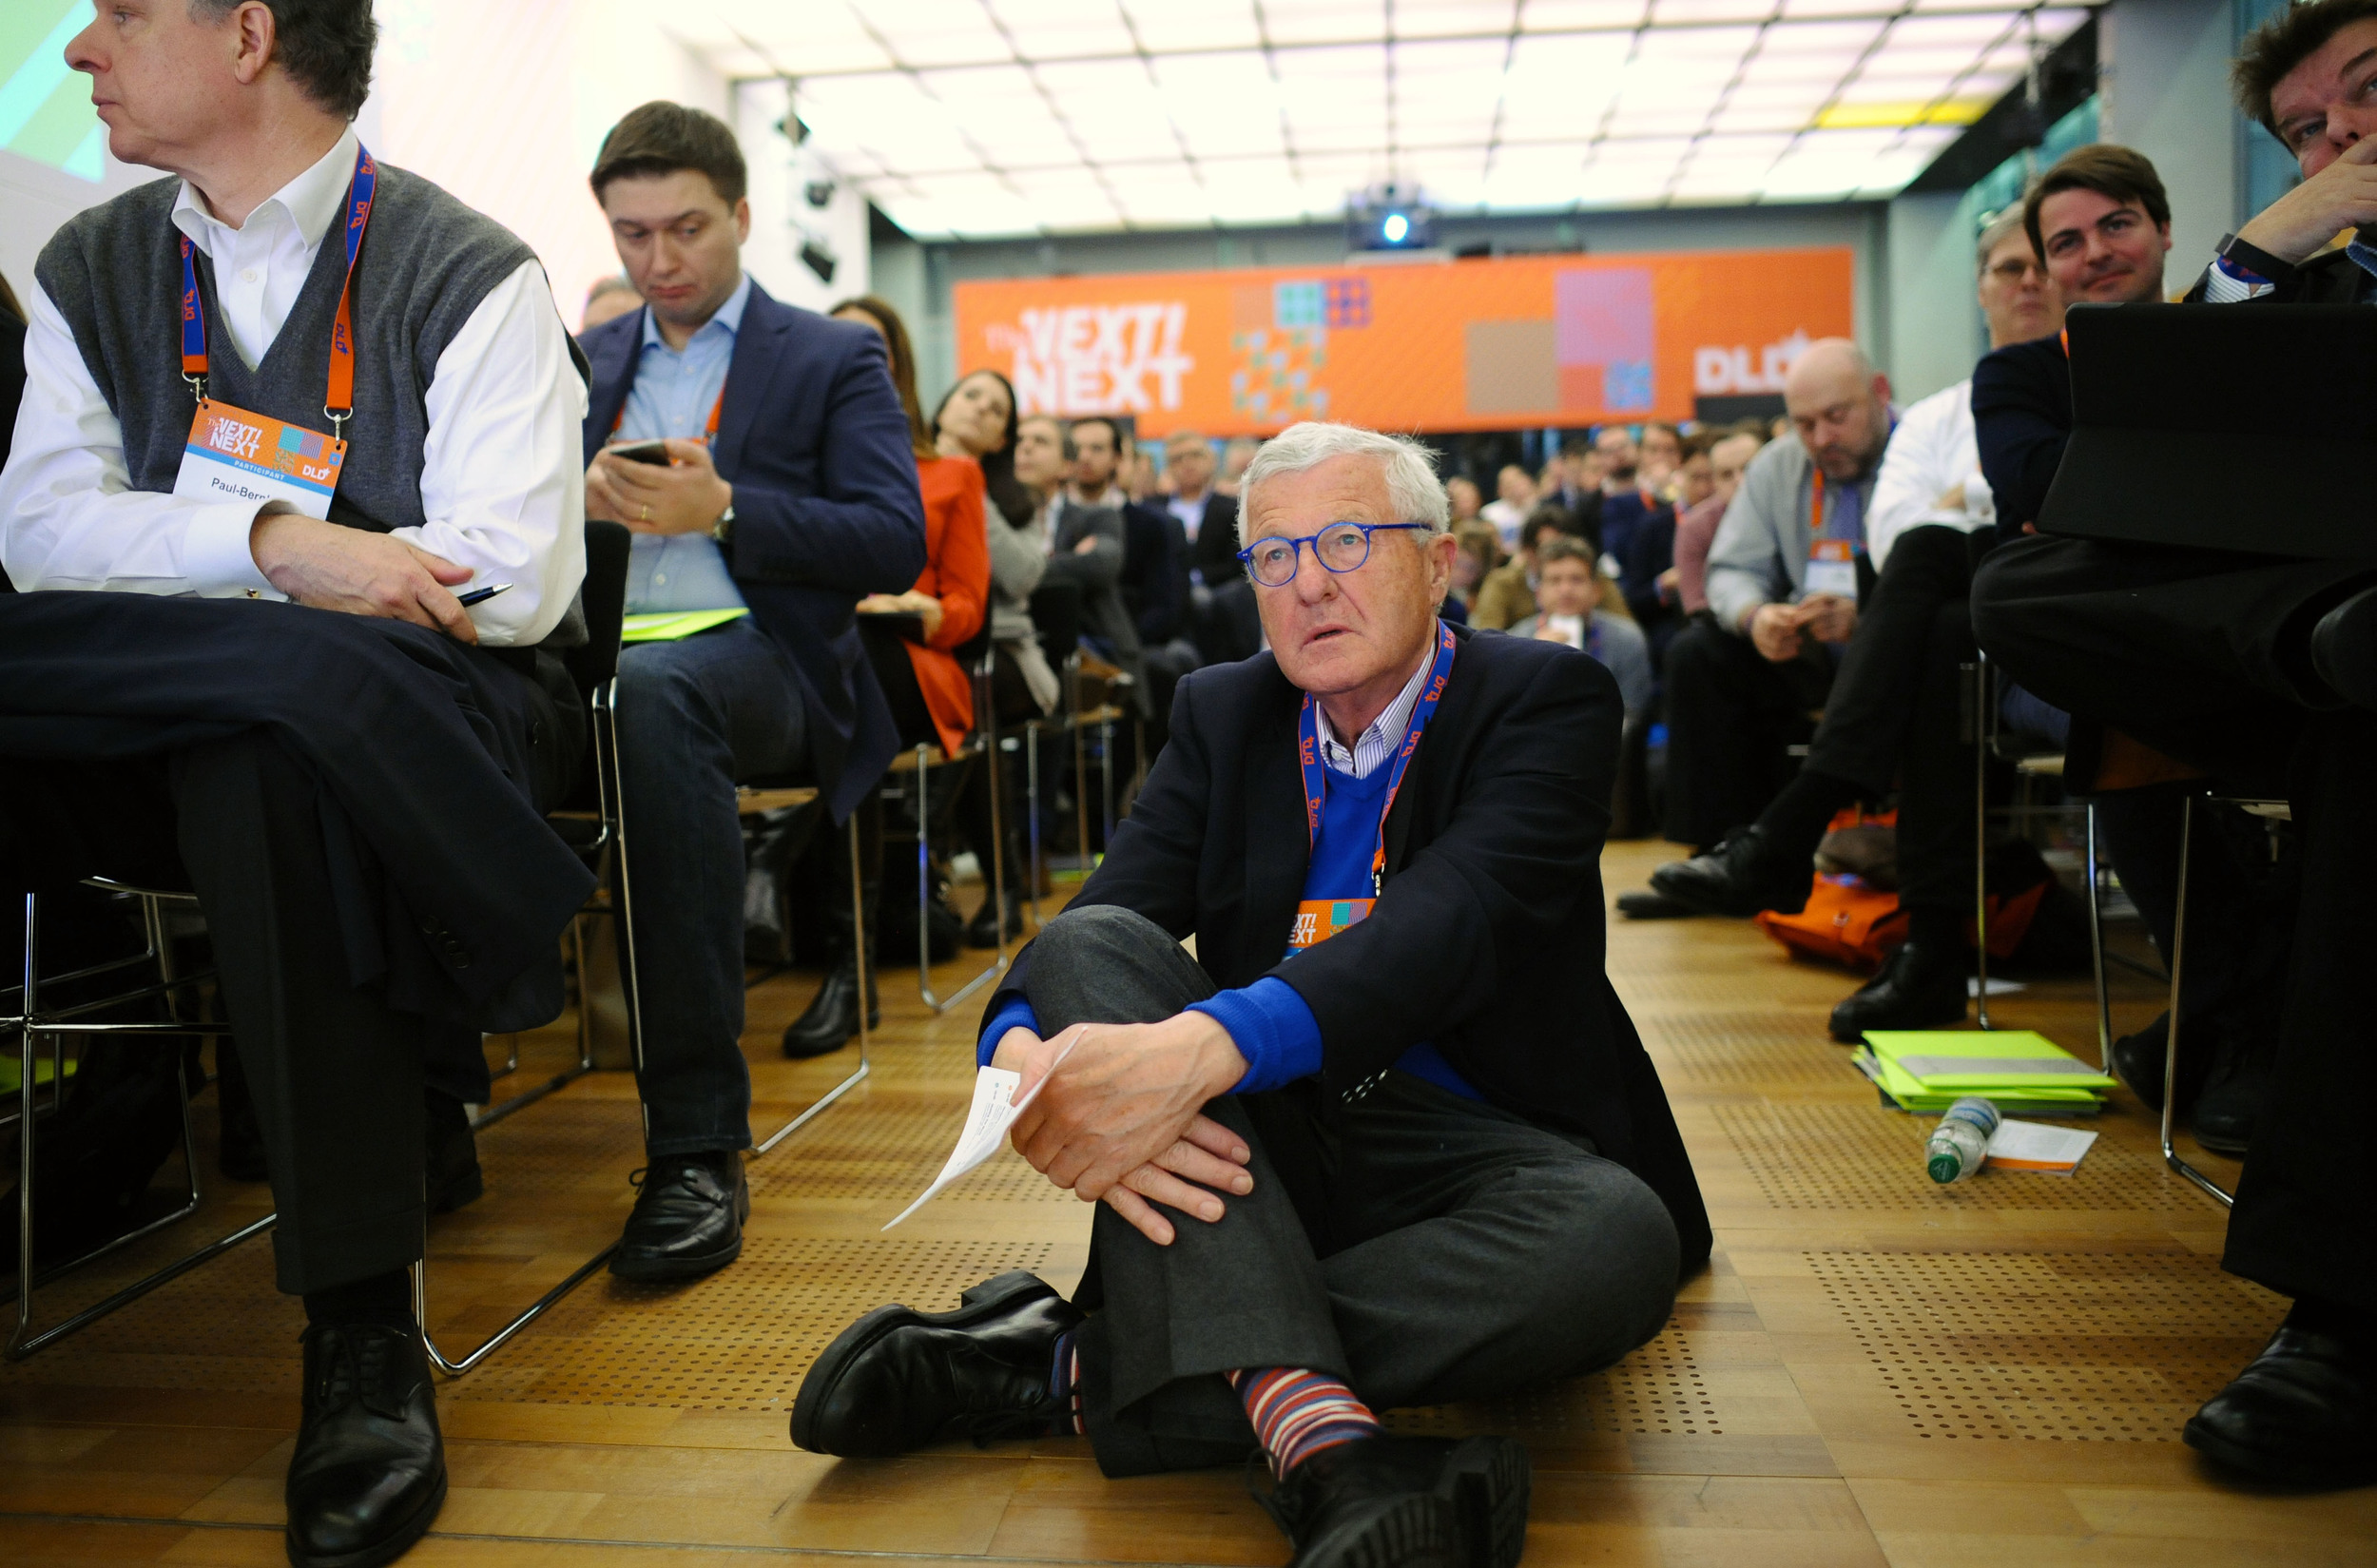 Publisher Dirk Ippen sits on the floor and listens to a speaker. © Andreas Gebert/Picture Alliance/Hubert Burda Media